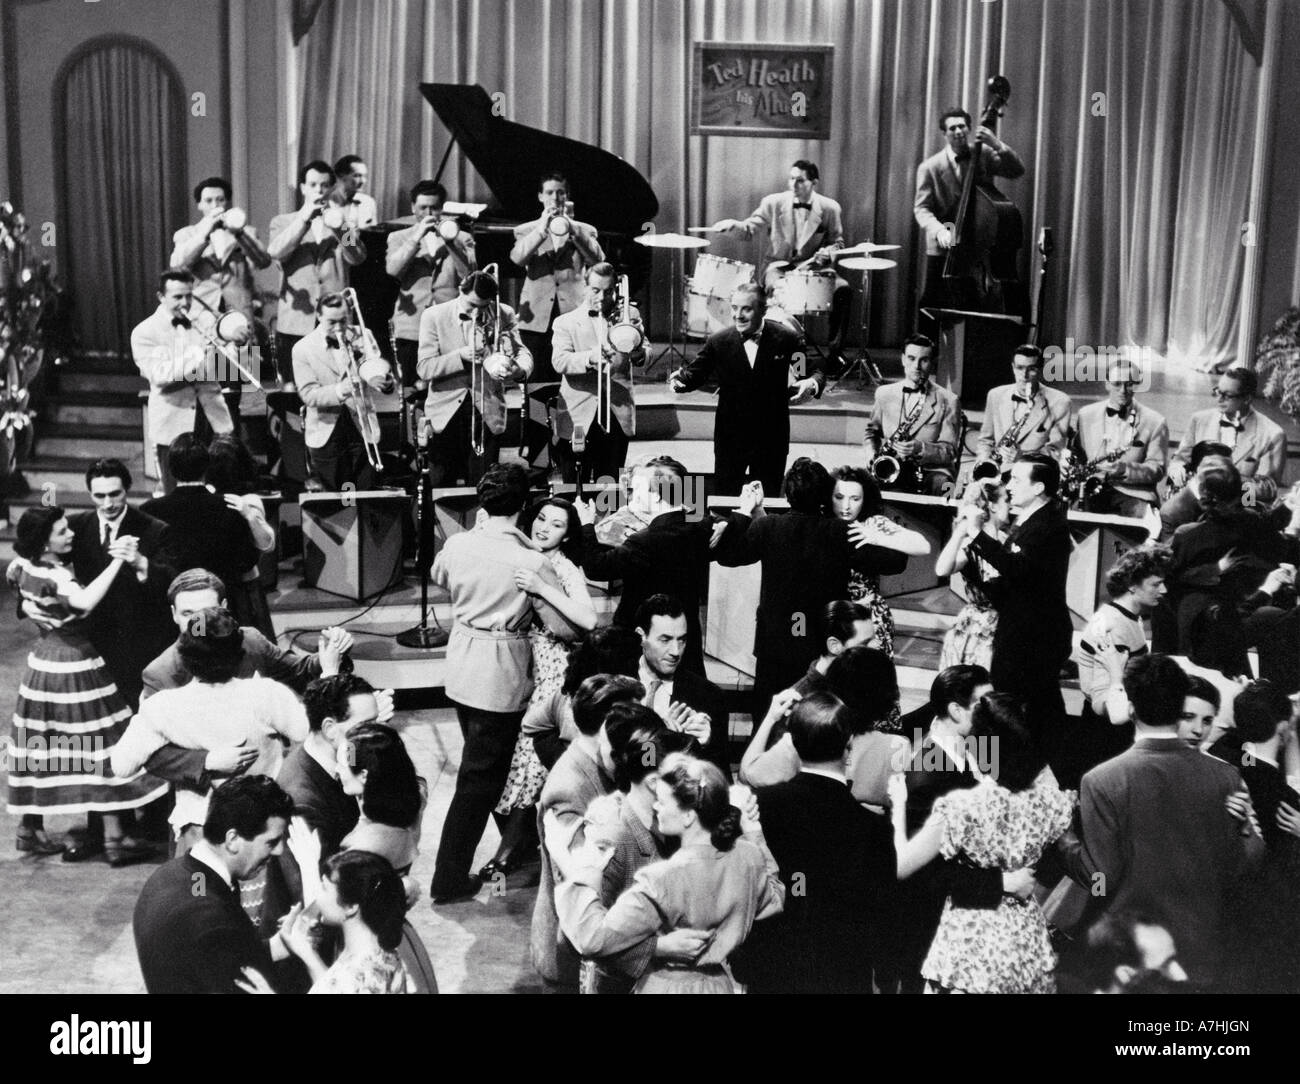 TED HEATH AND HIS ORCHESTRA - UK bandleader 1902 to 1969 seen here about 1955 - Stock Image